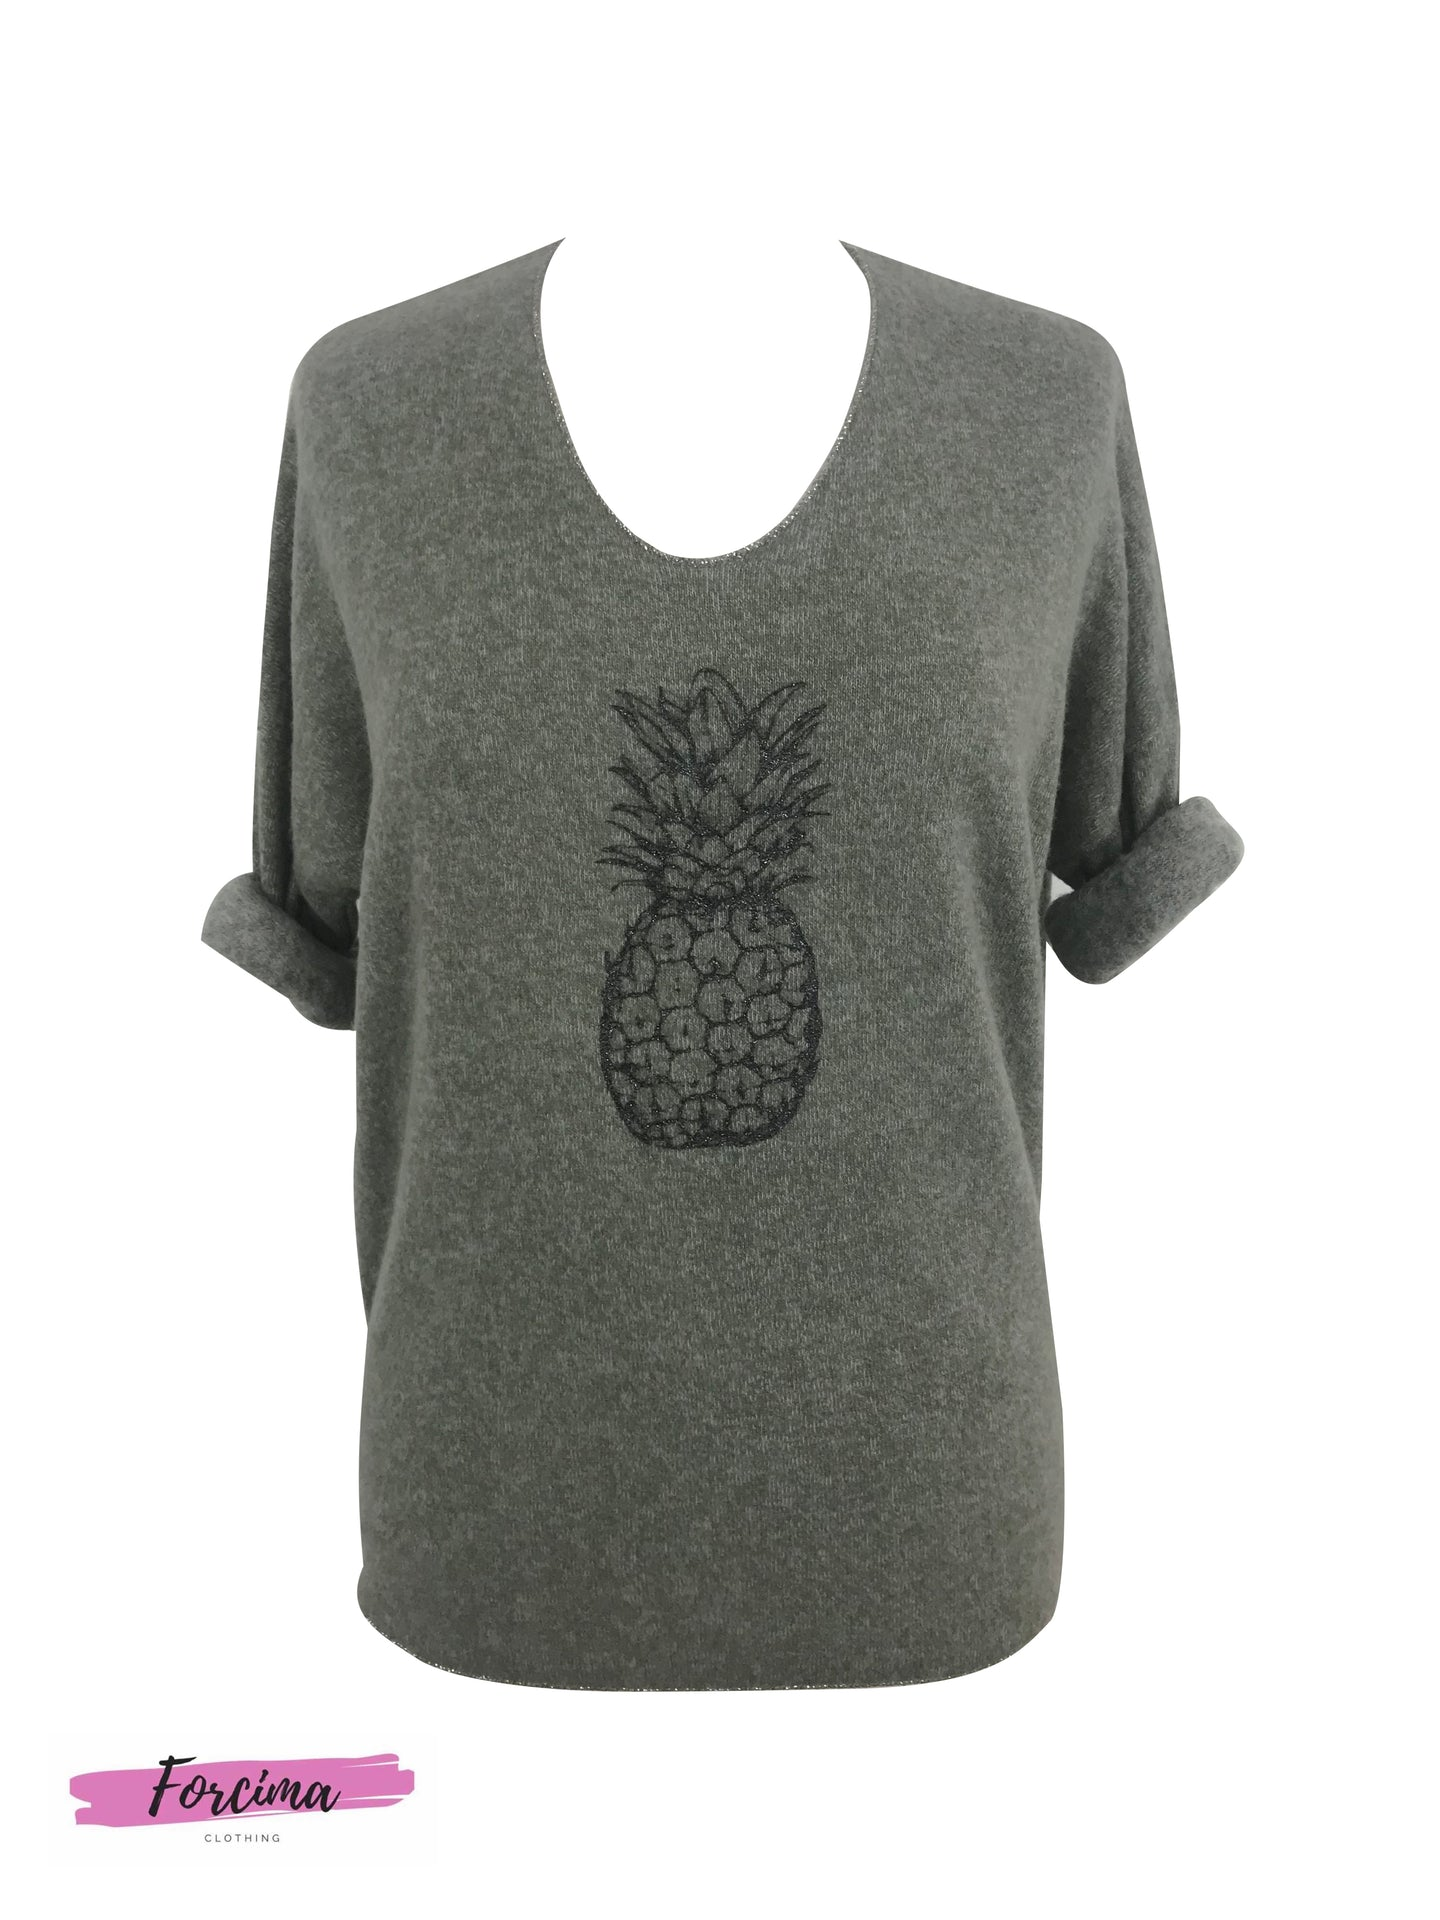 Brushed Pineapple Top